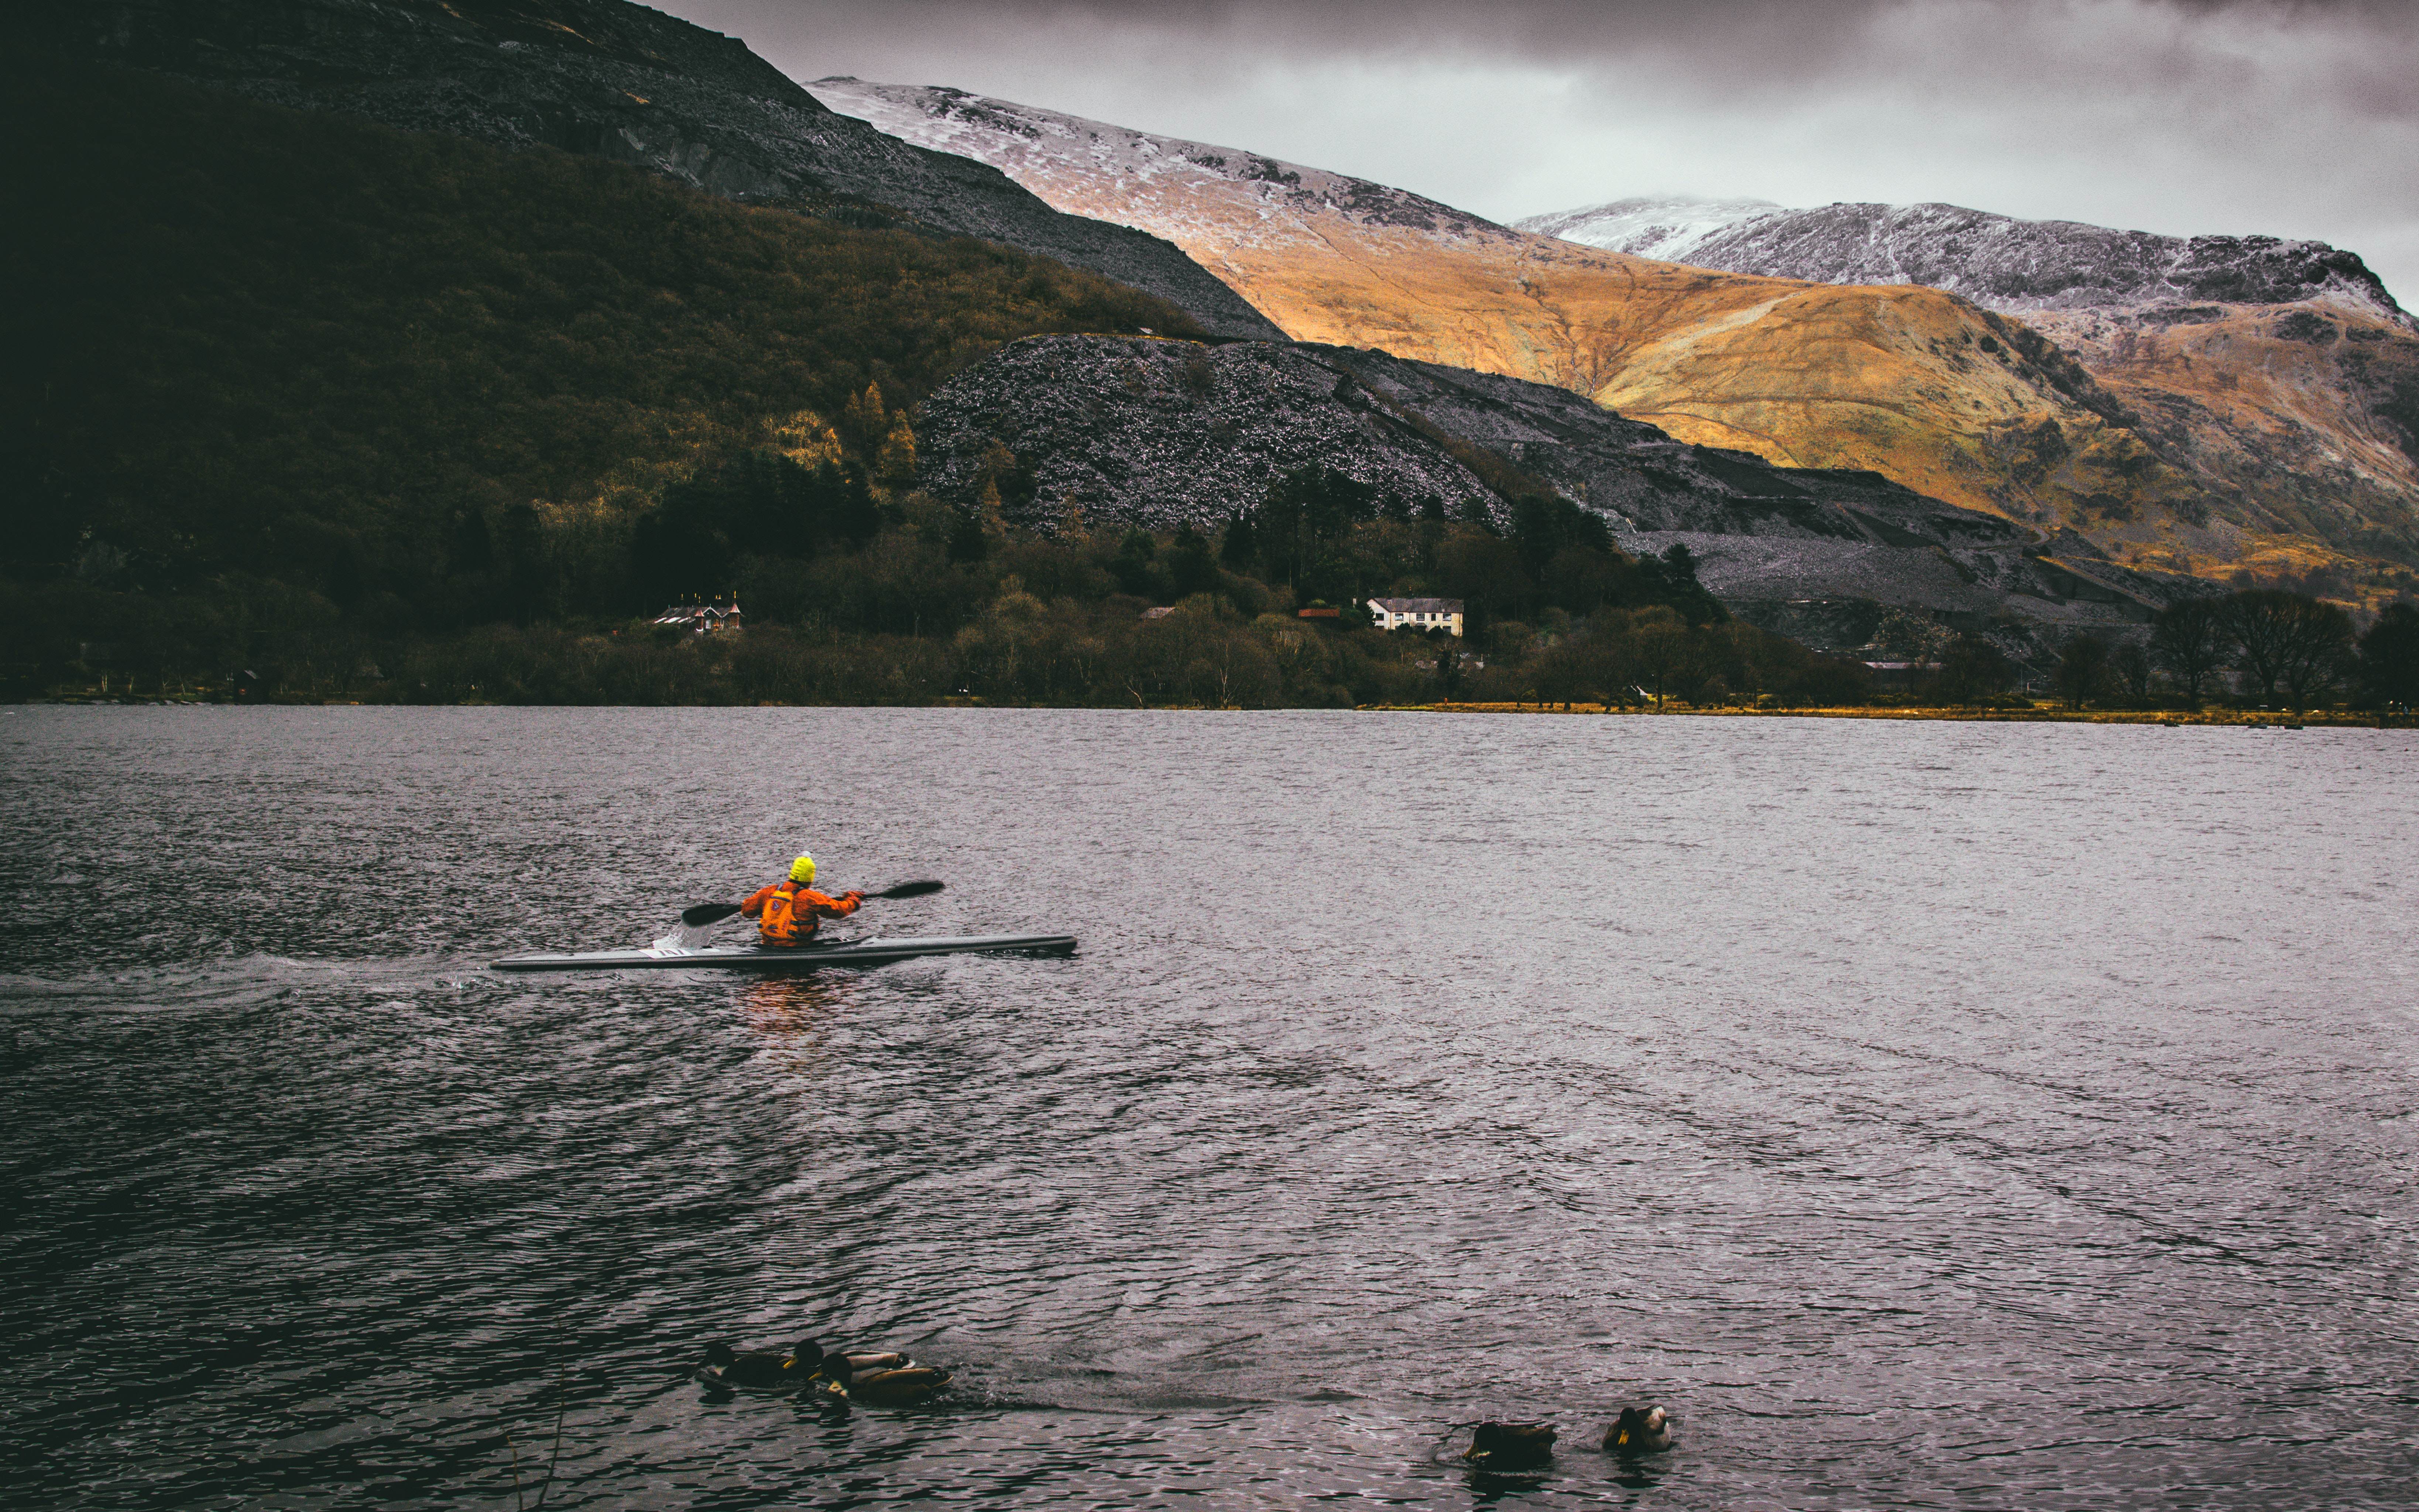 Person Kayaking on Body of Water, Recreation, Sea, Race, Person, HQ Photo